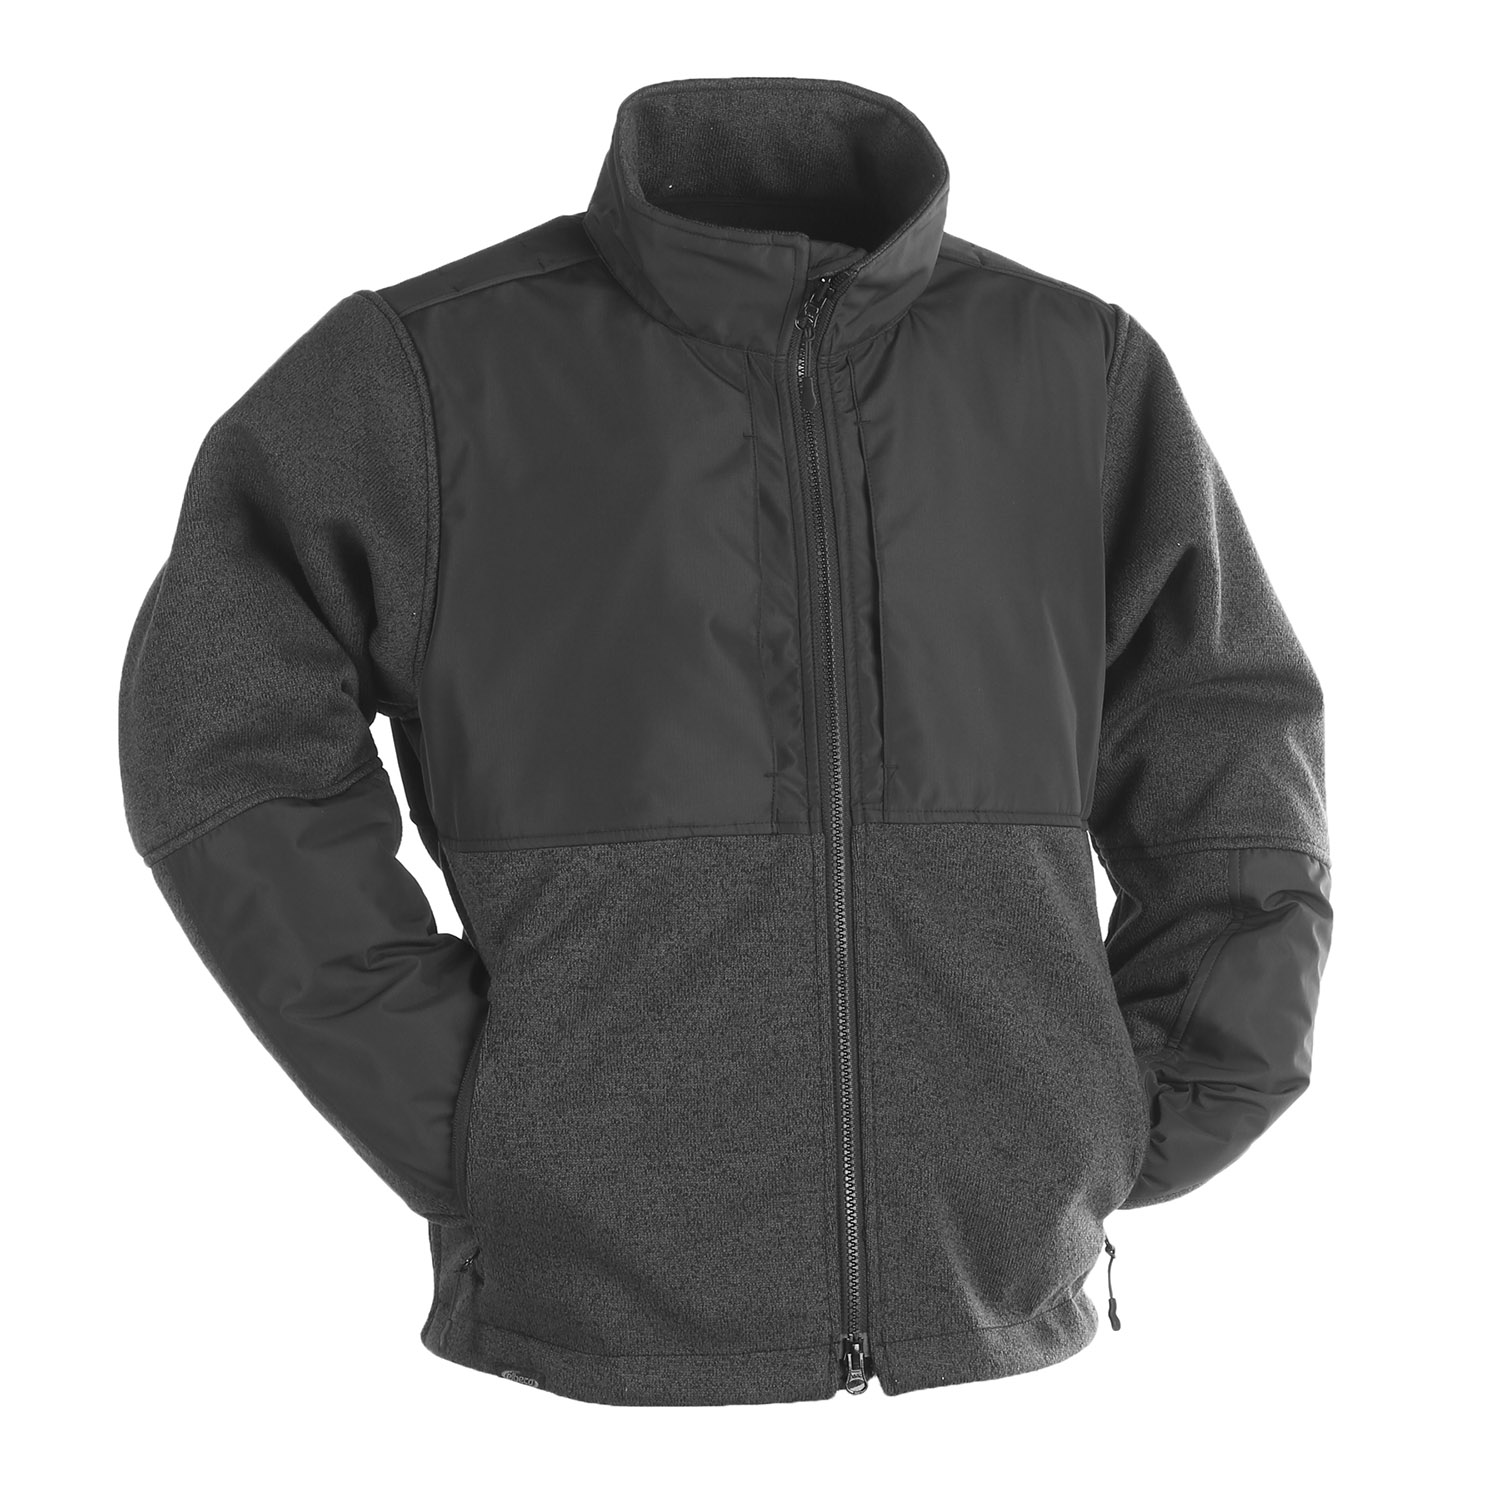 Elbeco Shield Apex Softshell Jacket